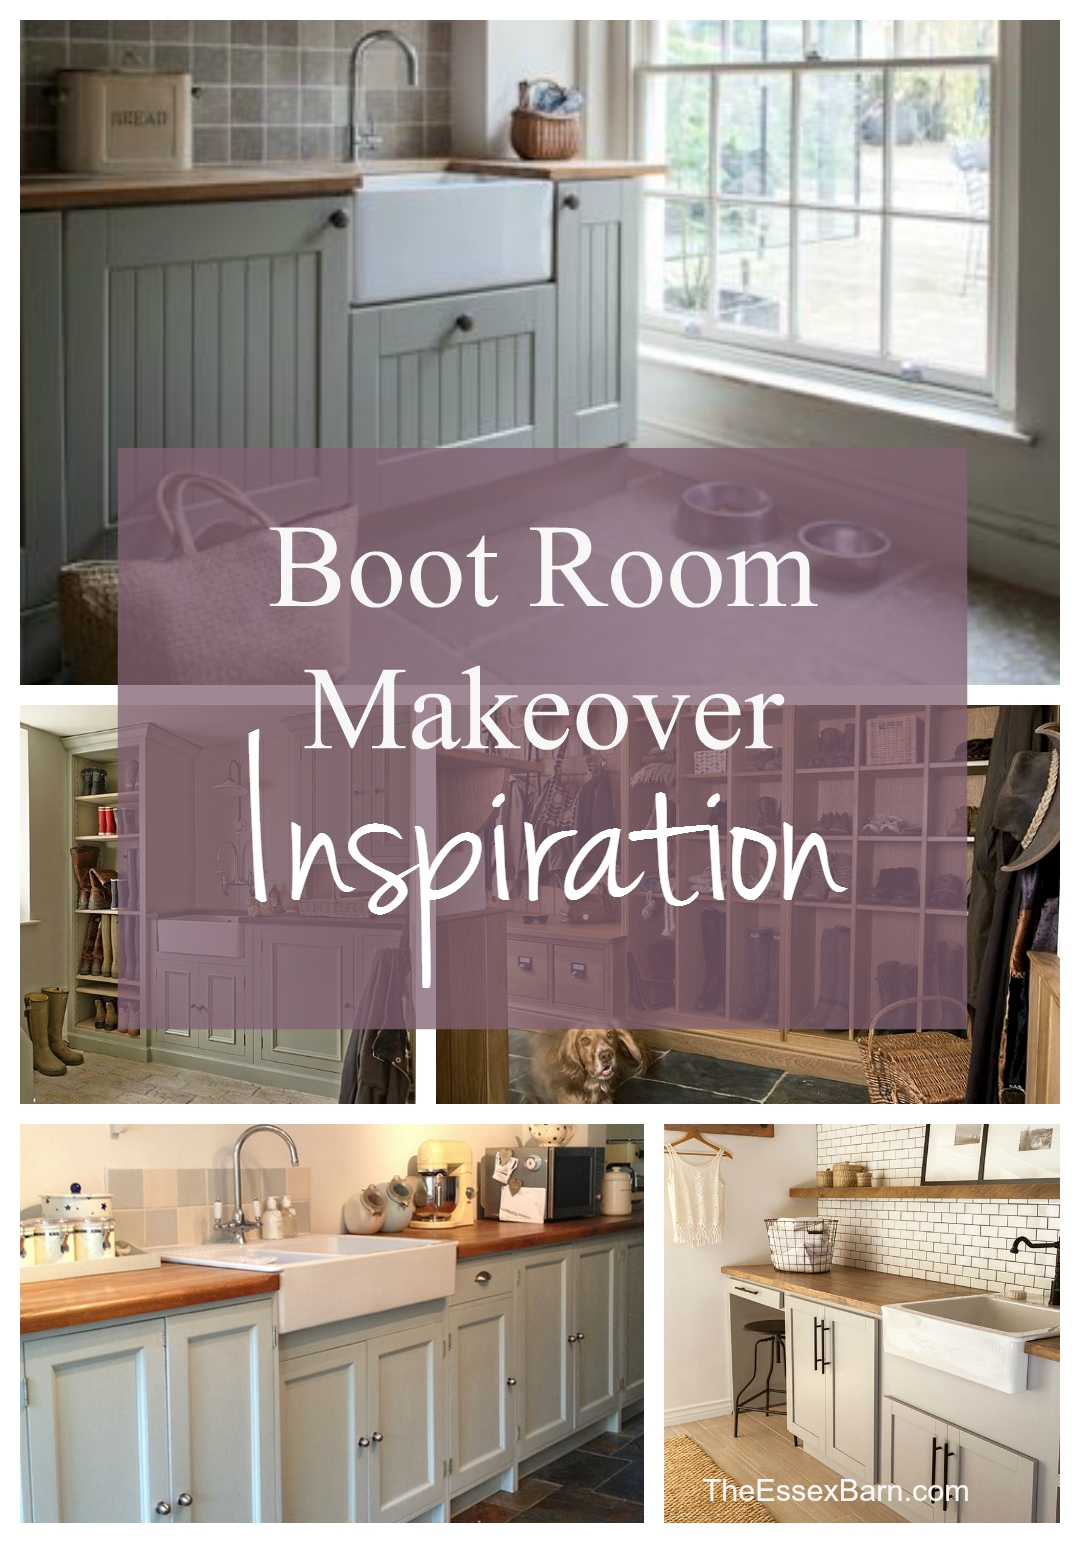 Pinnable boot room makeover inspiration